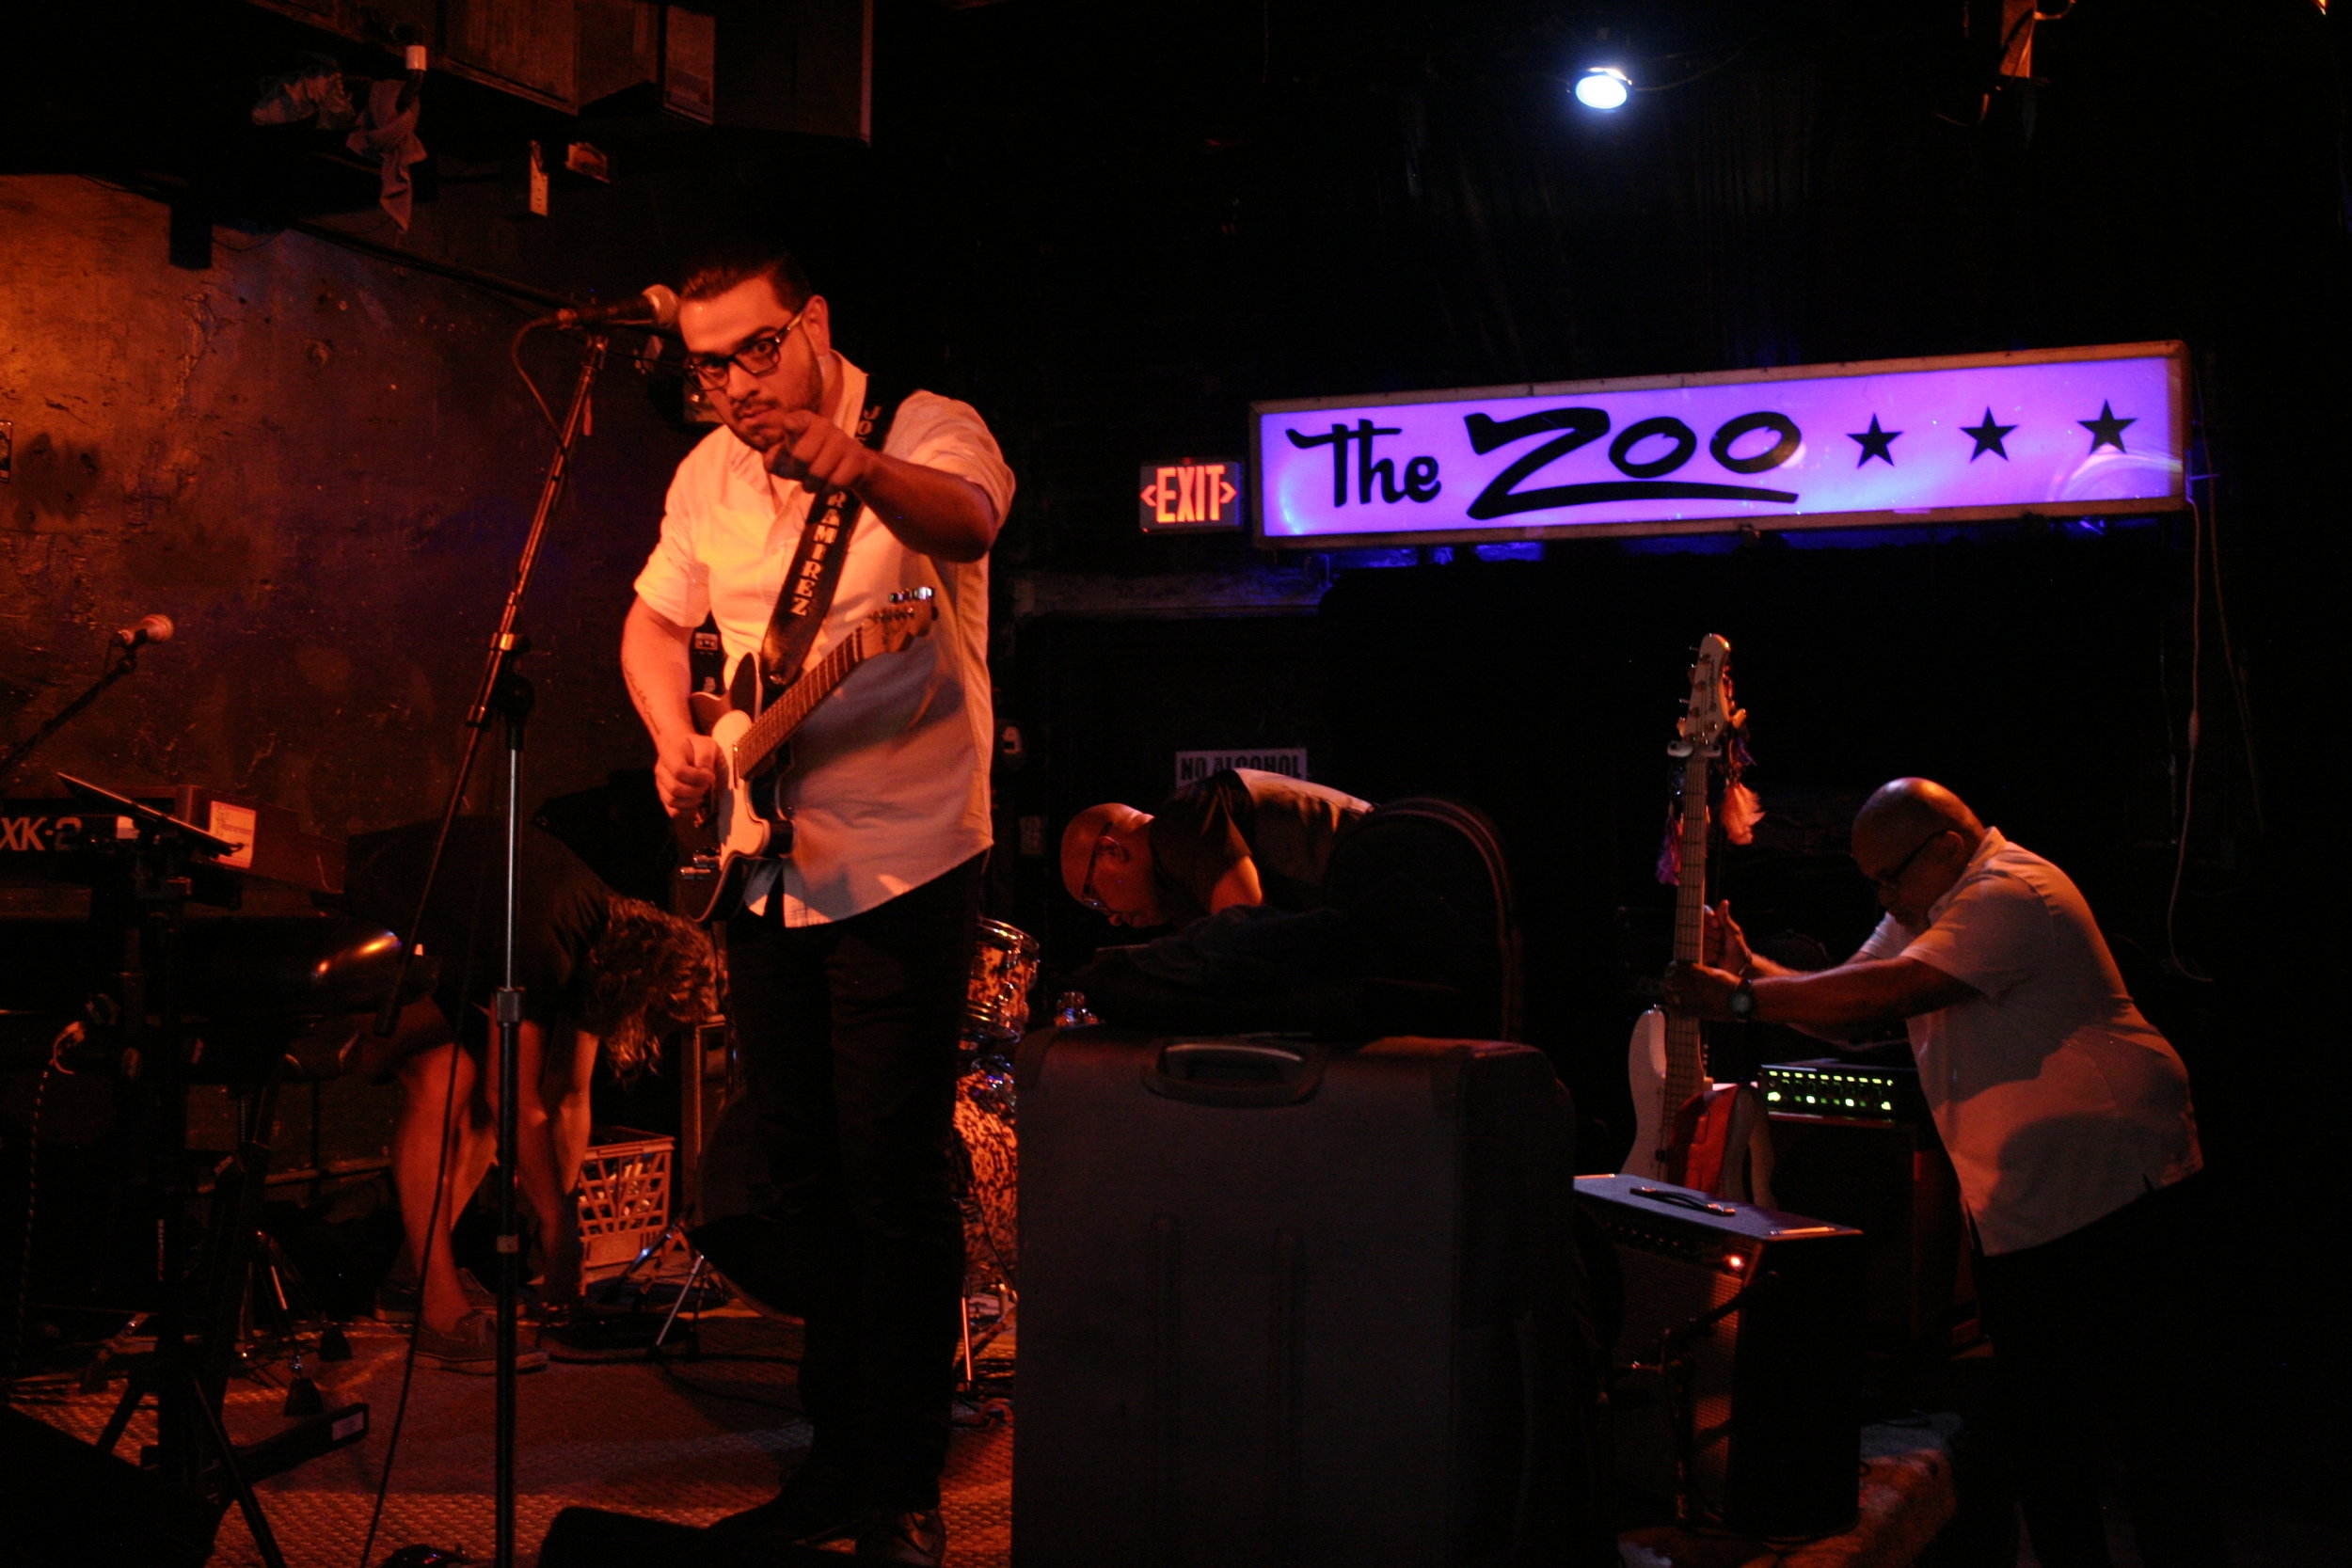 Zoo bar in Lincoln, Nebraska